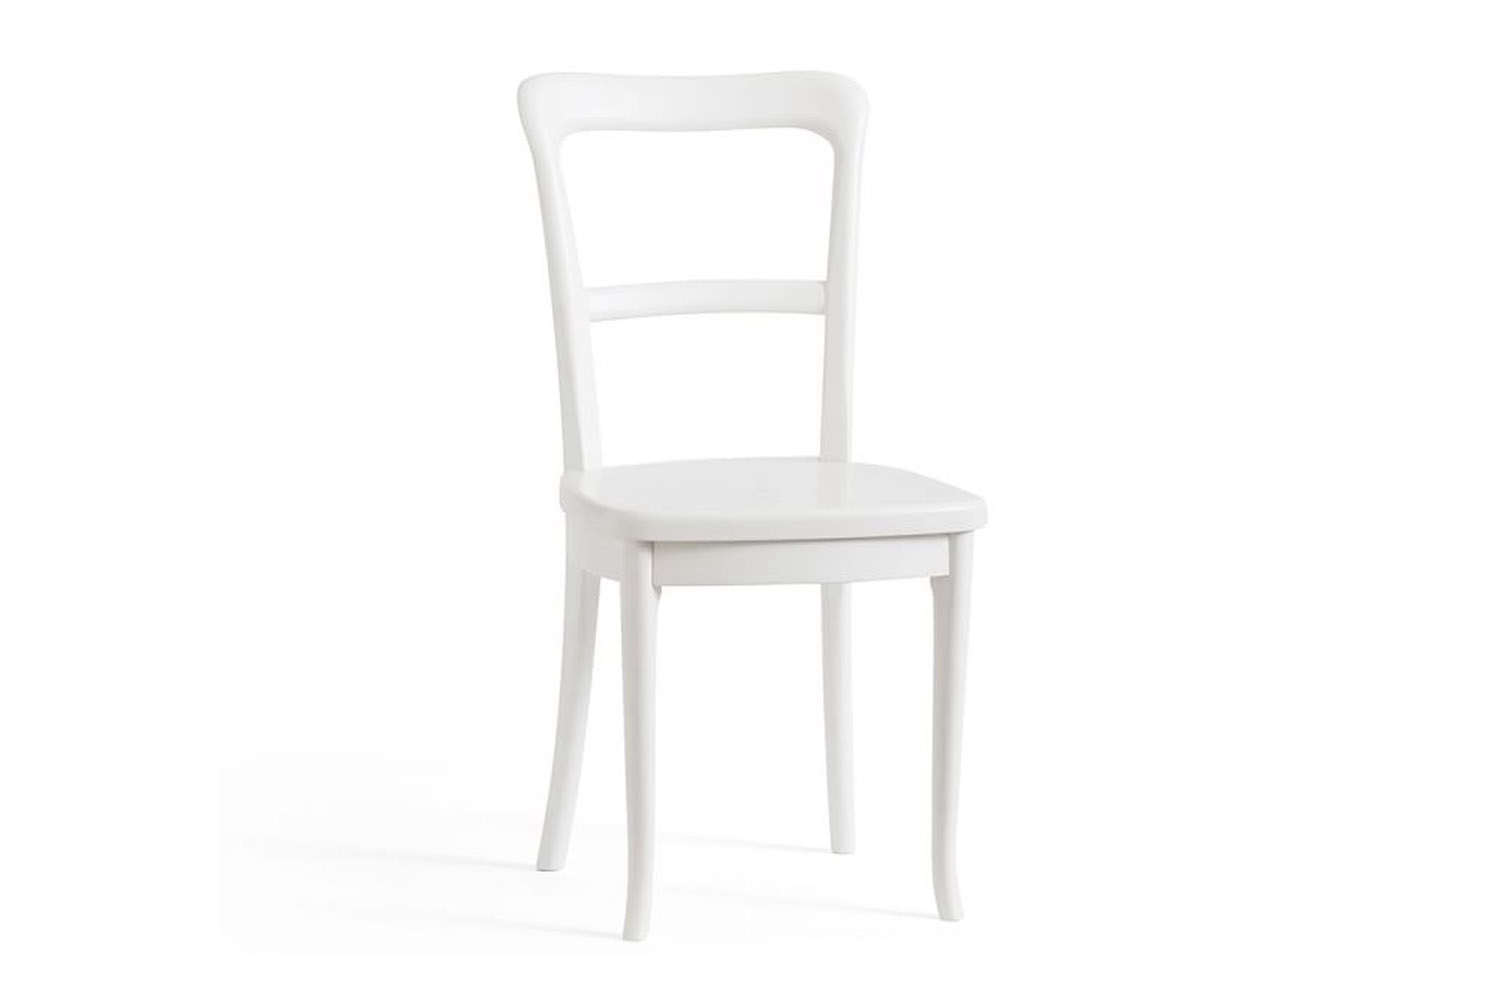 The Cline Bistro Dining Chair is $9 at Pottery Barn.